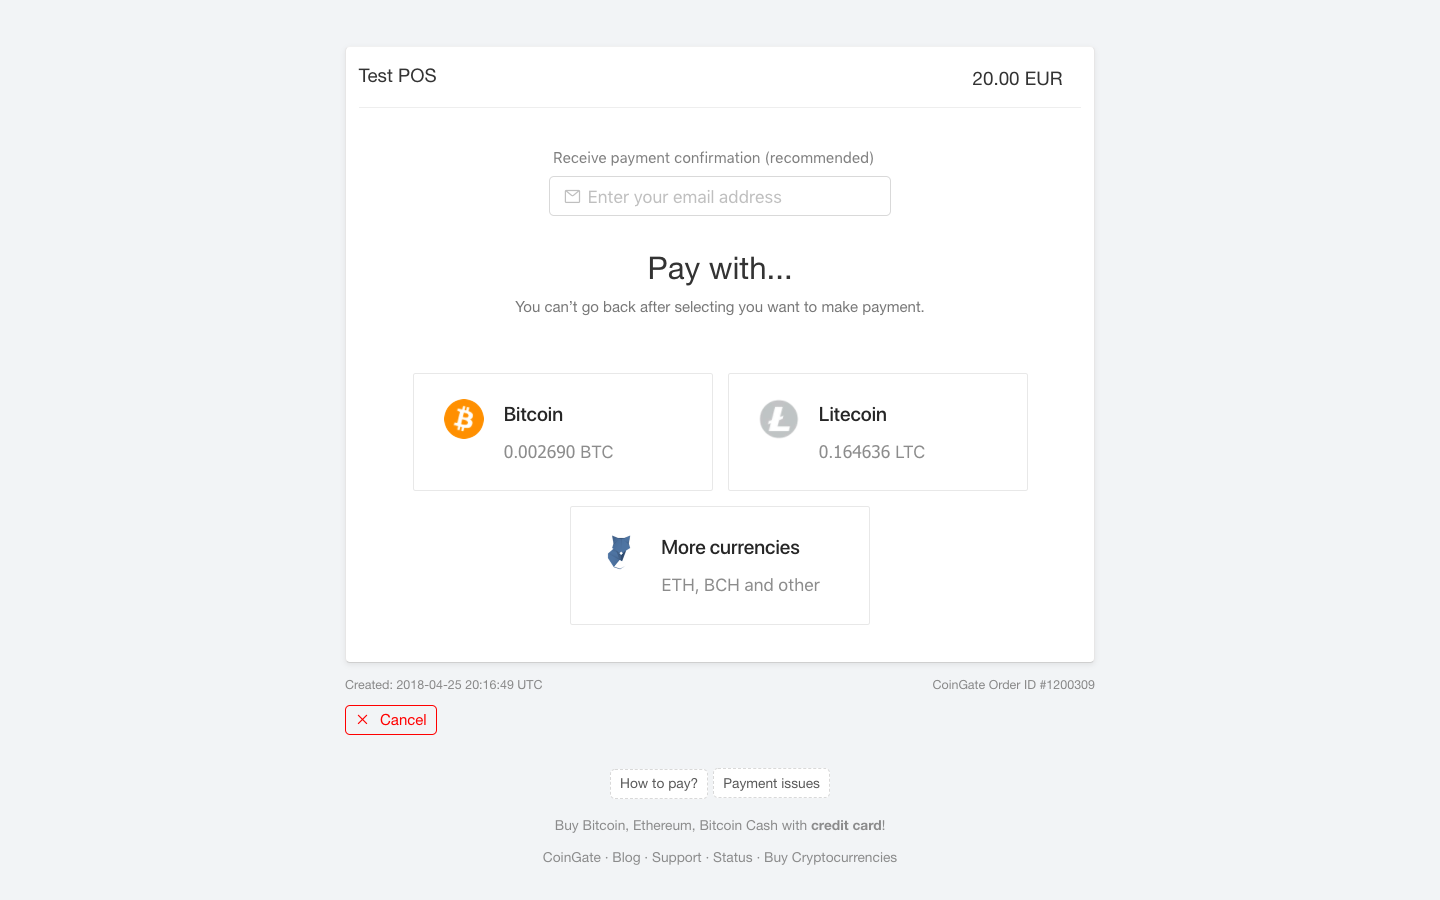 CoinGate new invoice design - Bitcoin, Litecoin, 50+ other cryptocurrencies